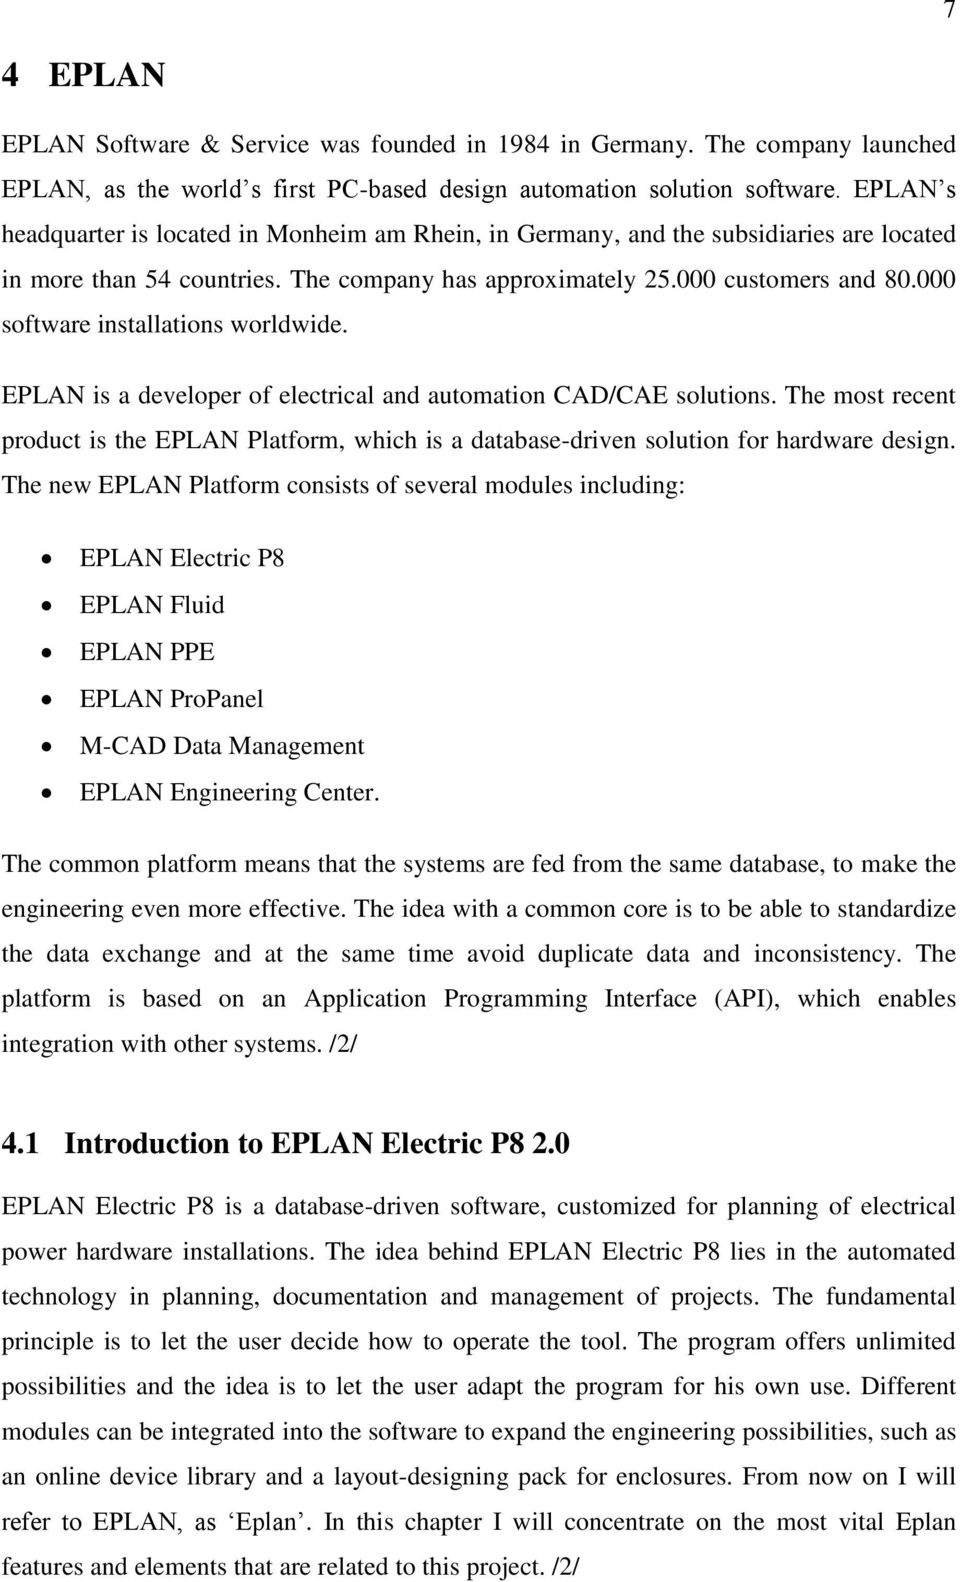 EPLAN Electric P8 parts database and pilot project - PDF